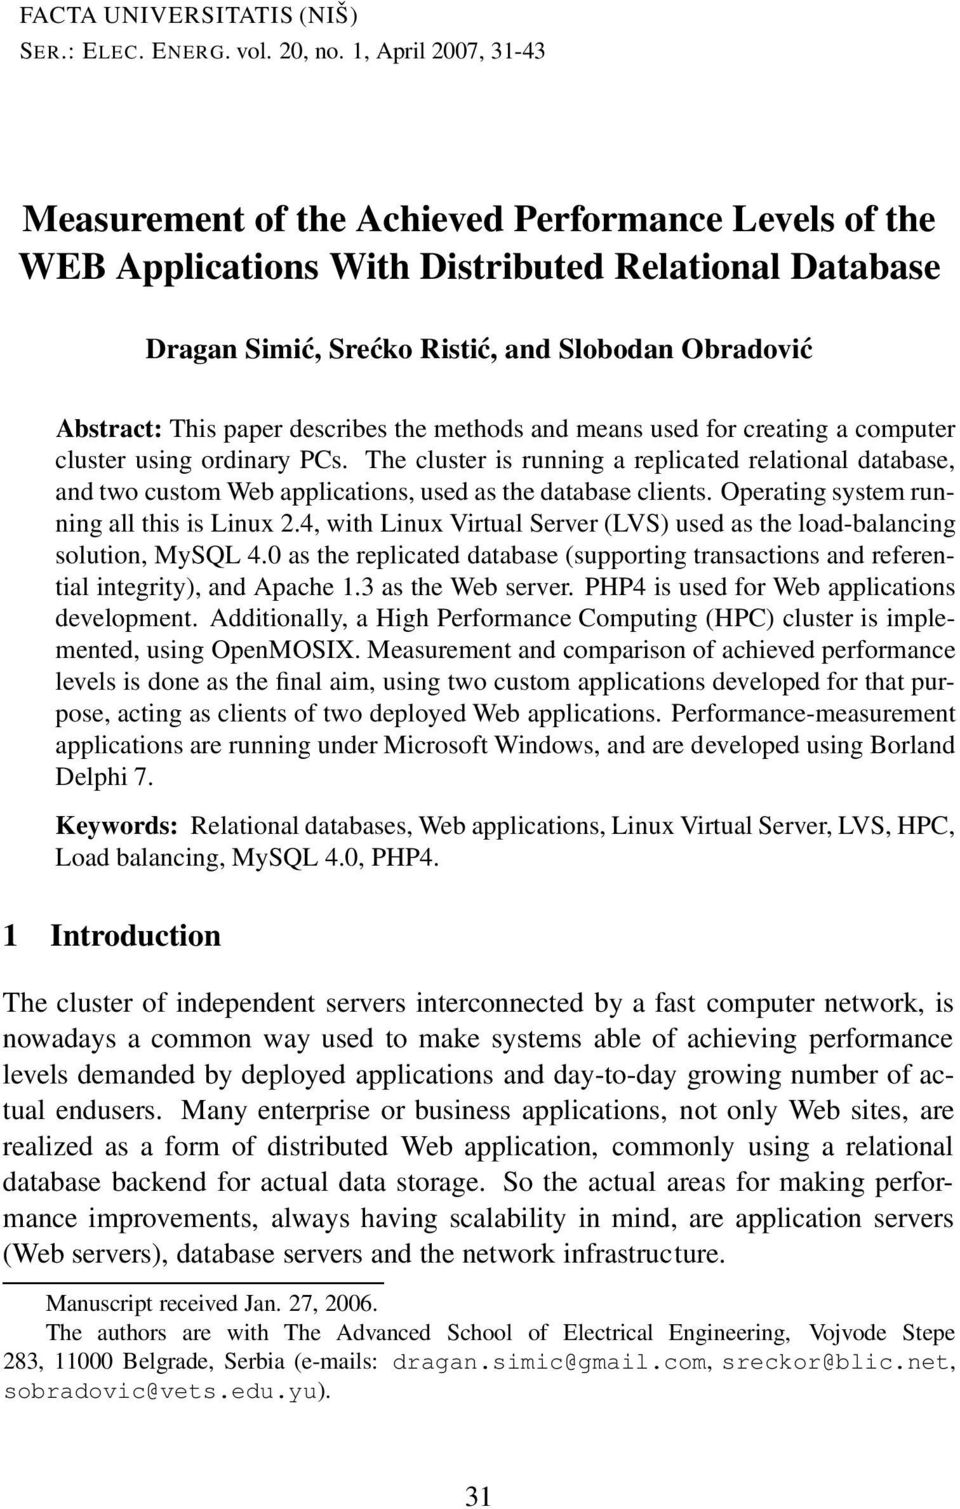 paper describes the methods and means used for creating a computer cluster using ordinary PCs.